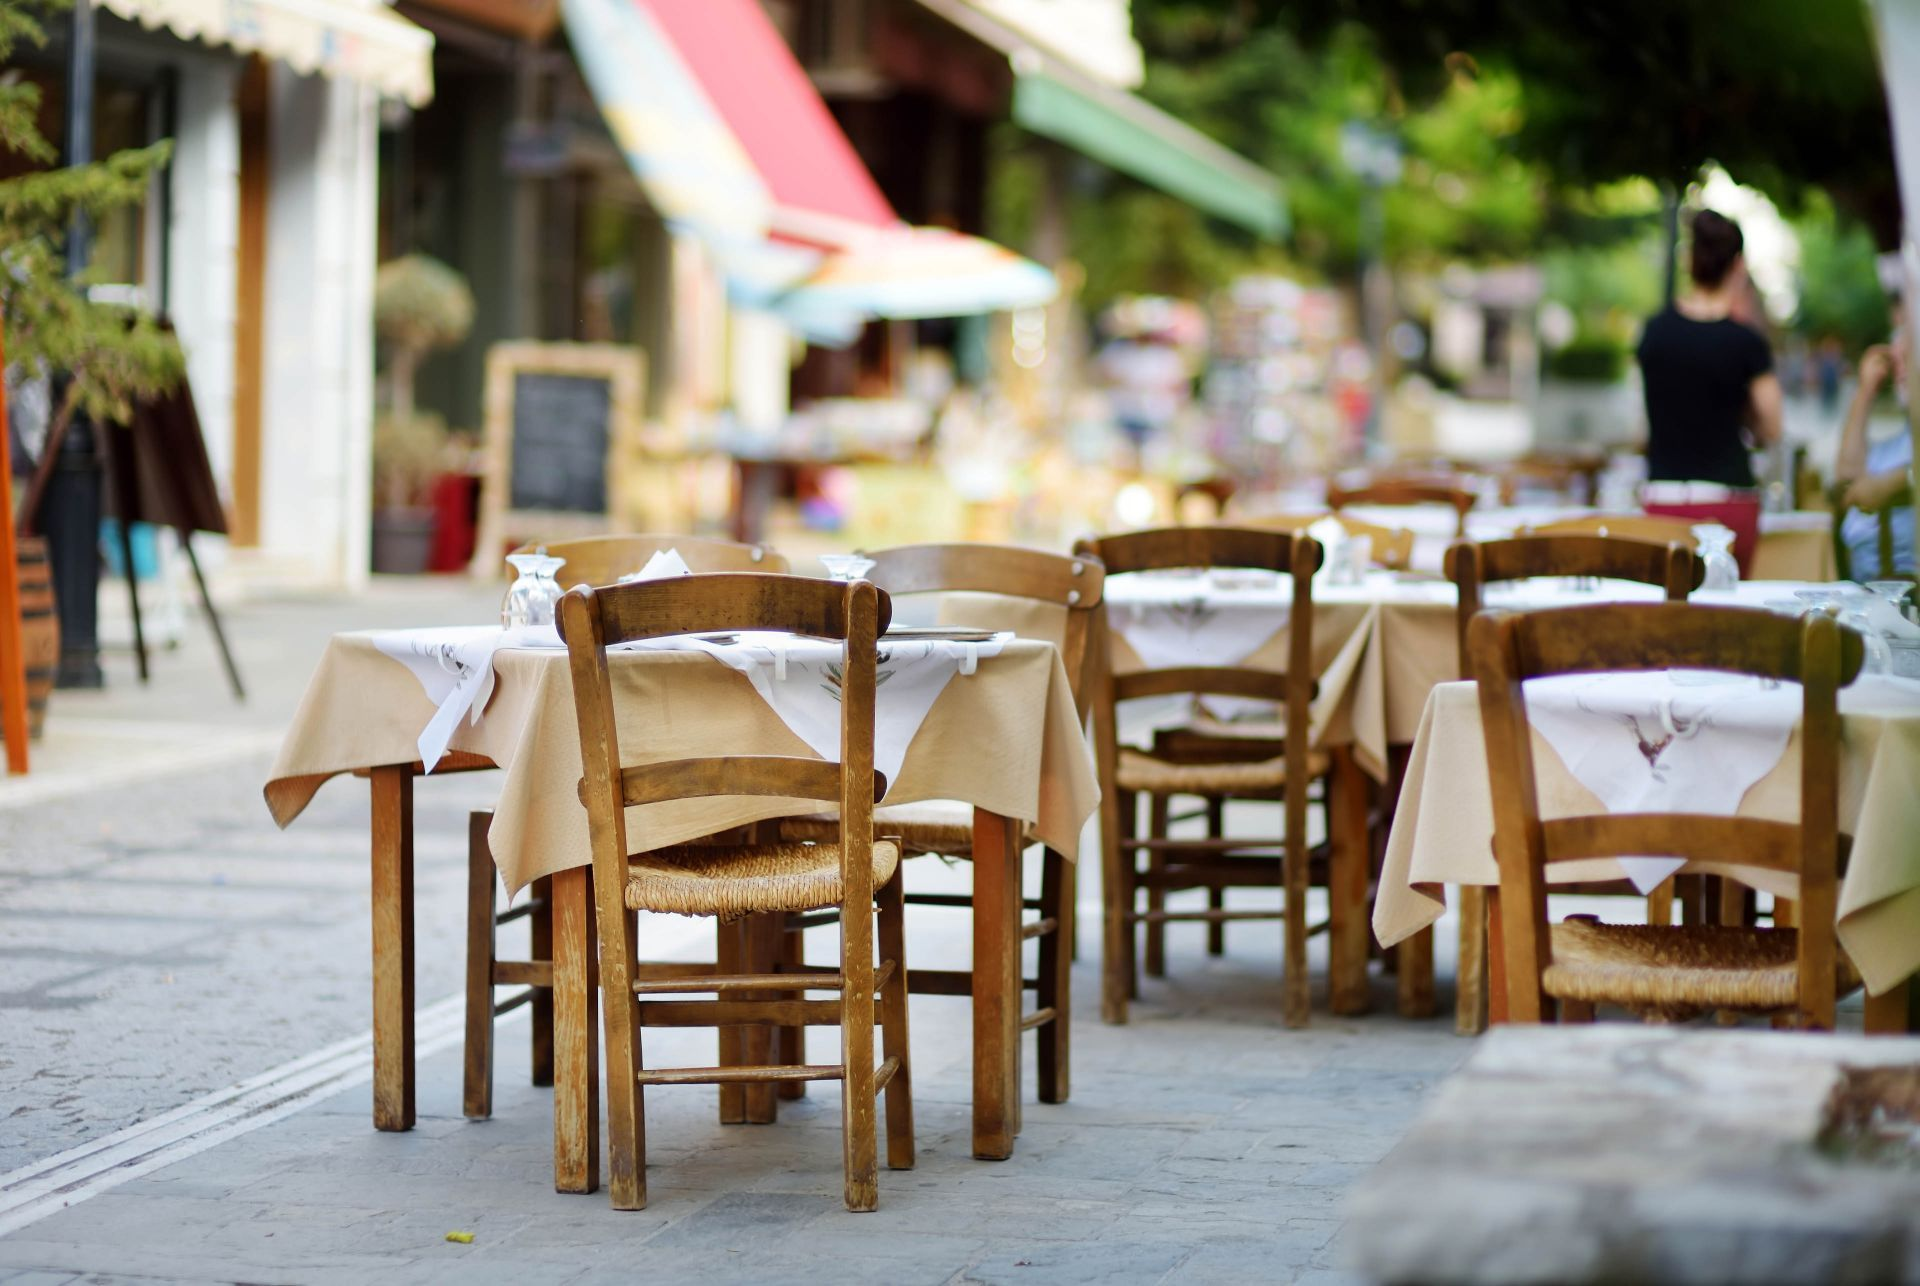 Places to eat and drink in Kalavryta